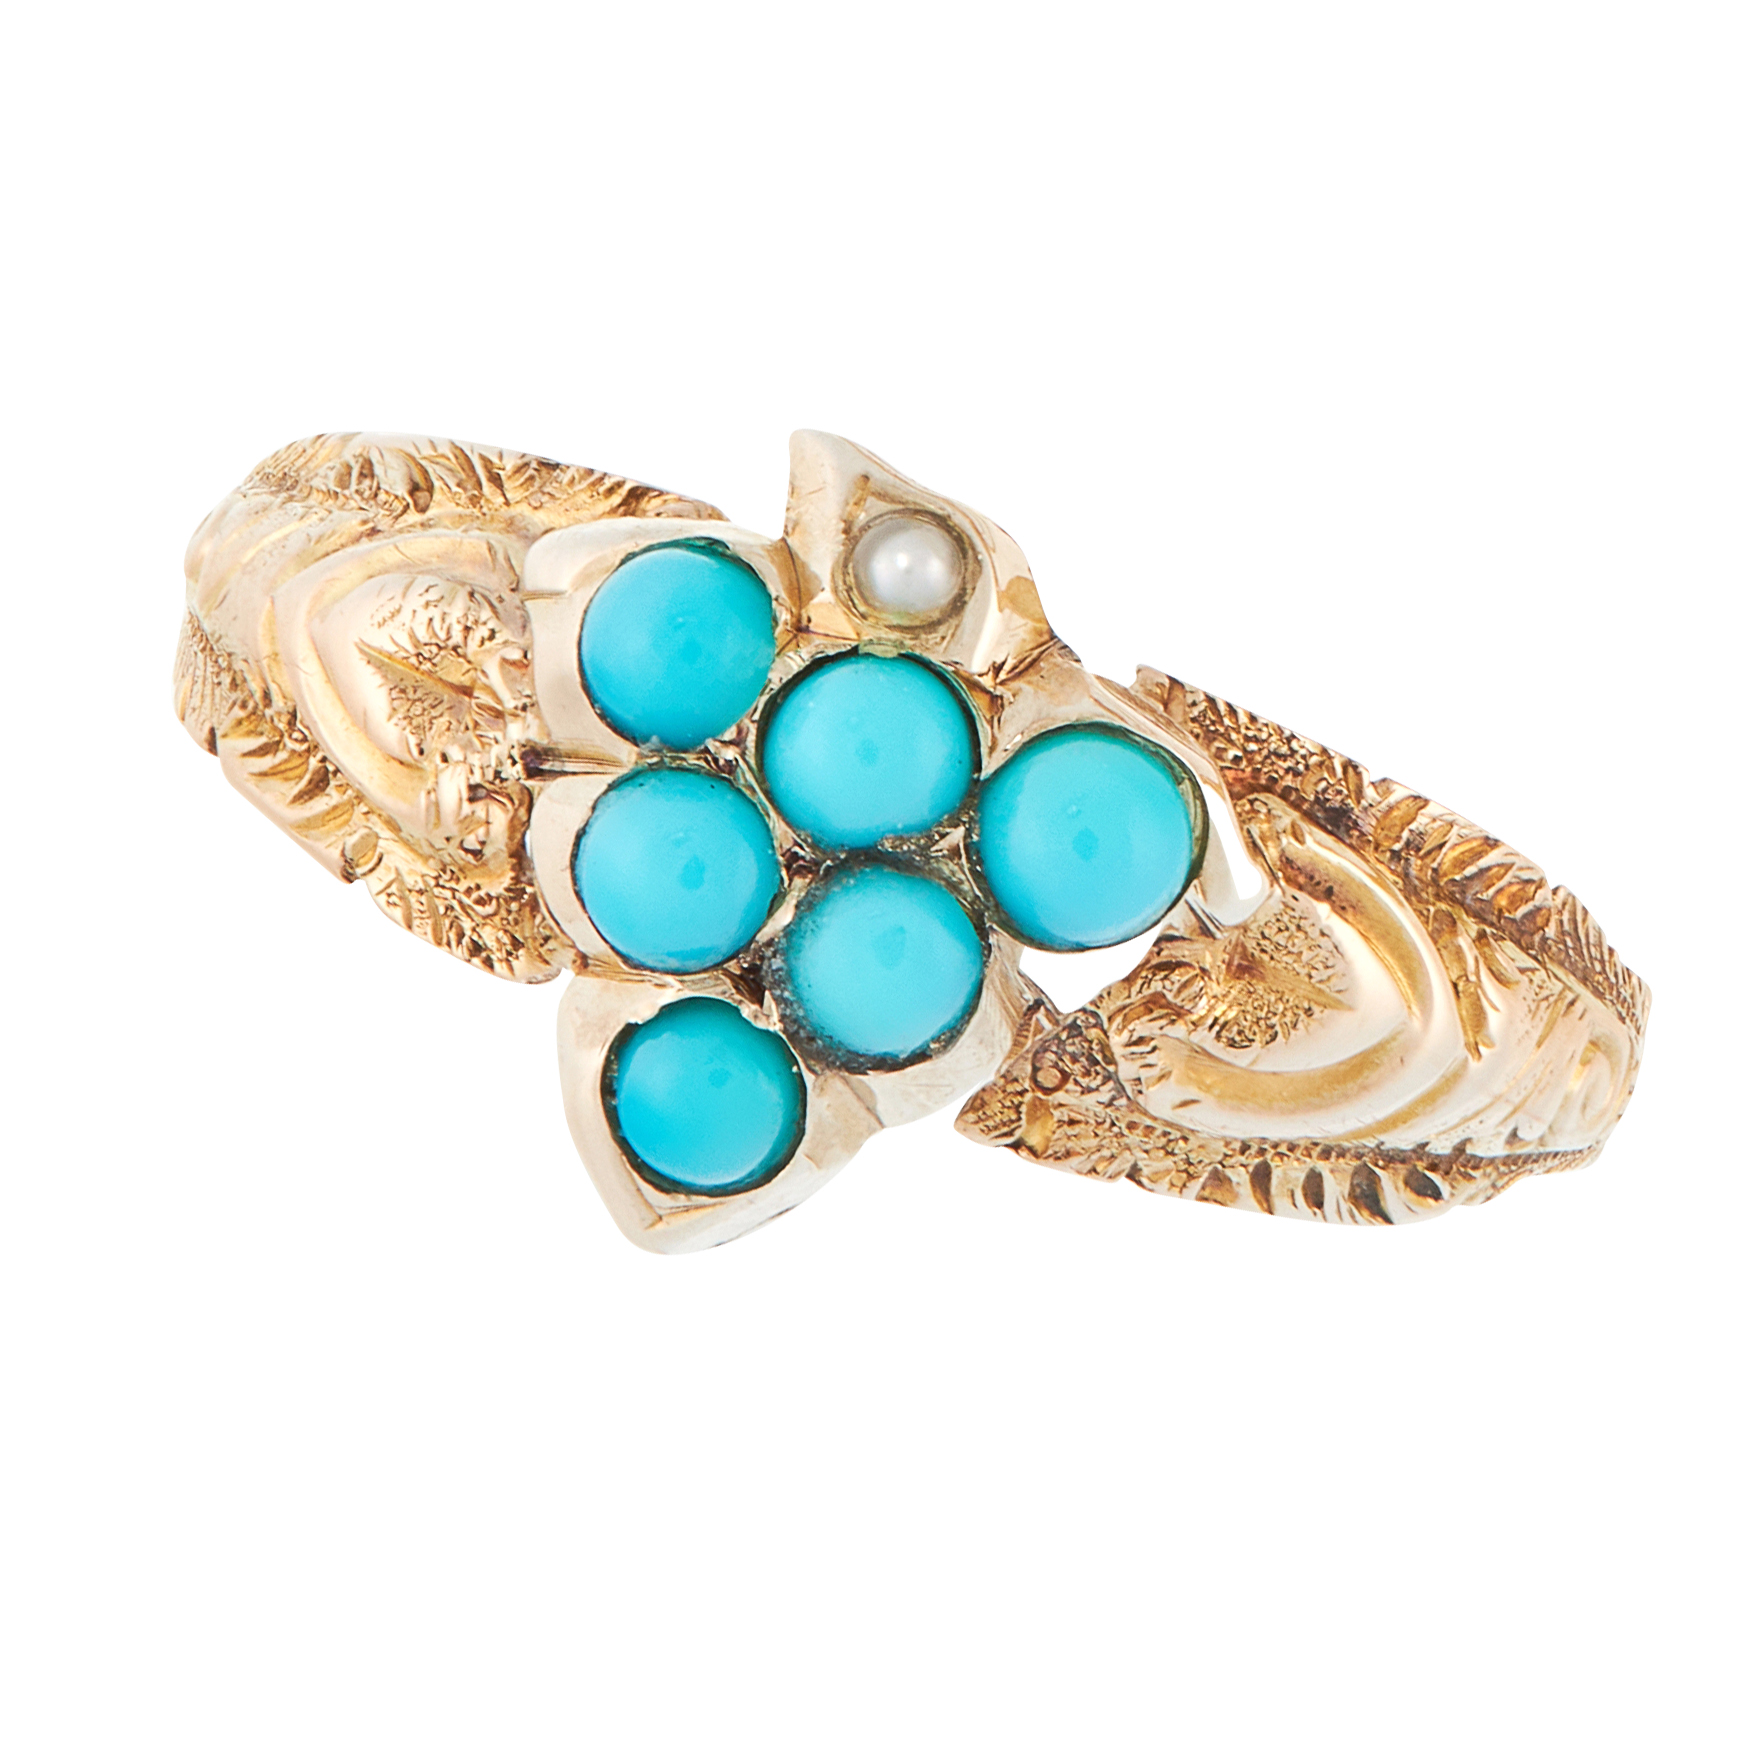 AN ANTIQUE TURQUOISE AND PEARL DRESS RING, 19TH CENTURY in high carat yellow gold, designed as a